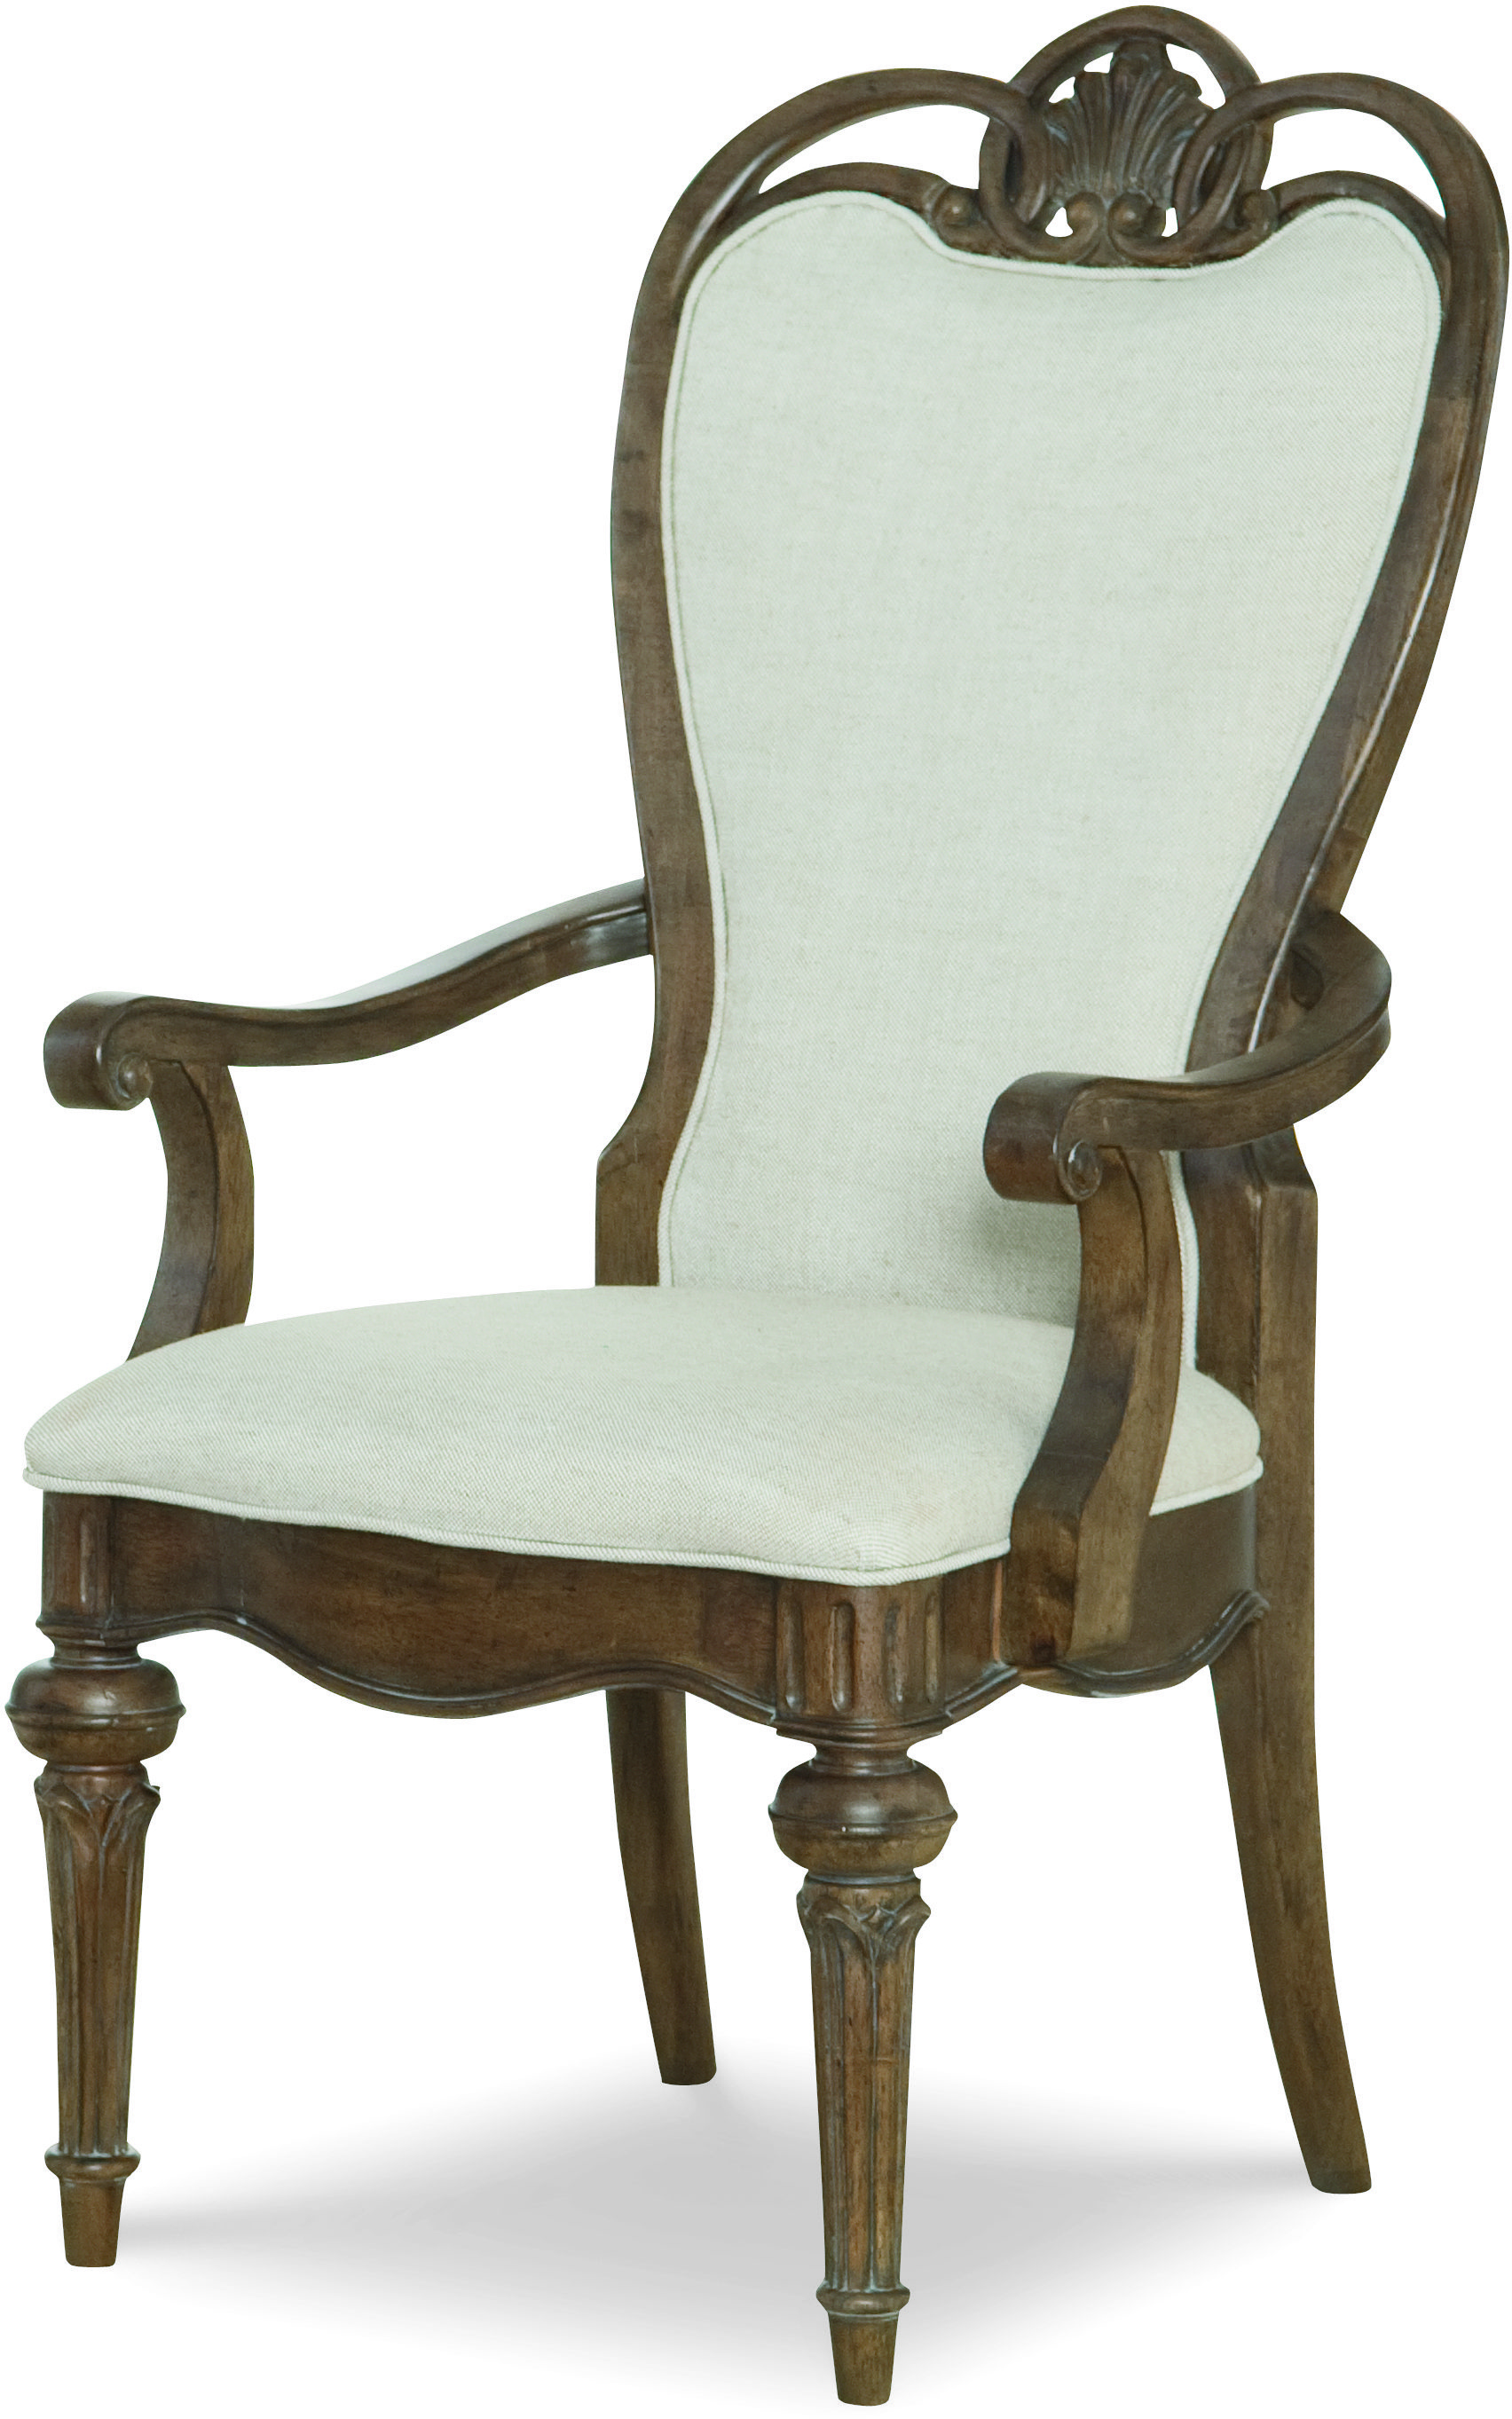 Legacy Classic Renaissance Upholstered Back Arm Chair  - Item Number: 5500-241 KD